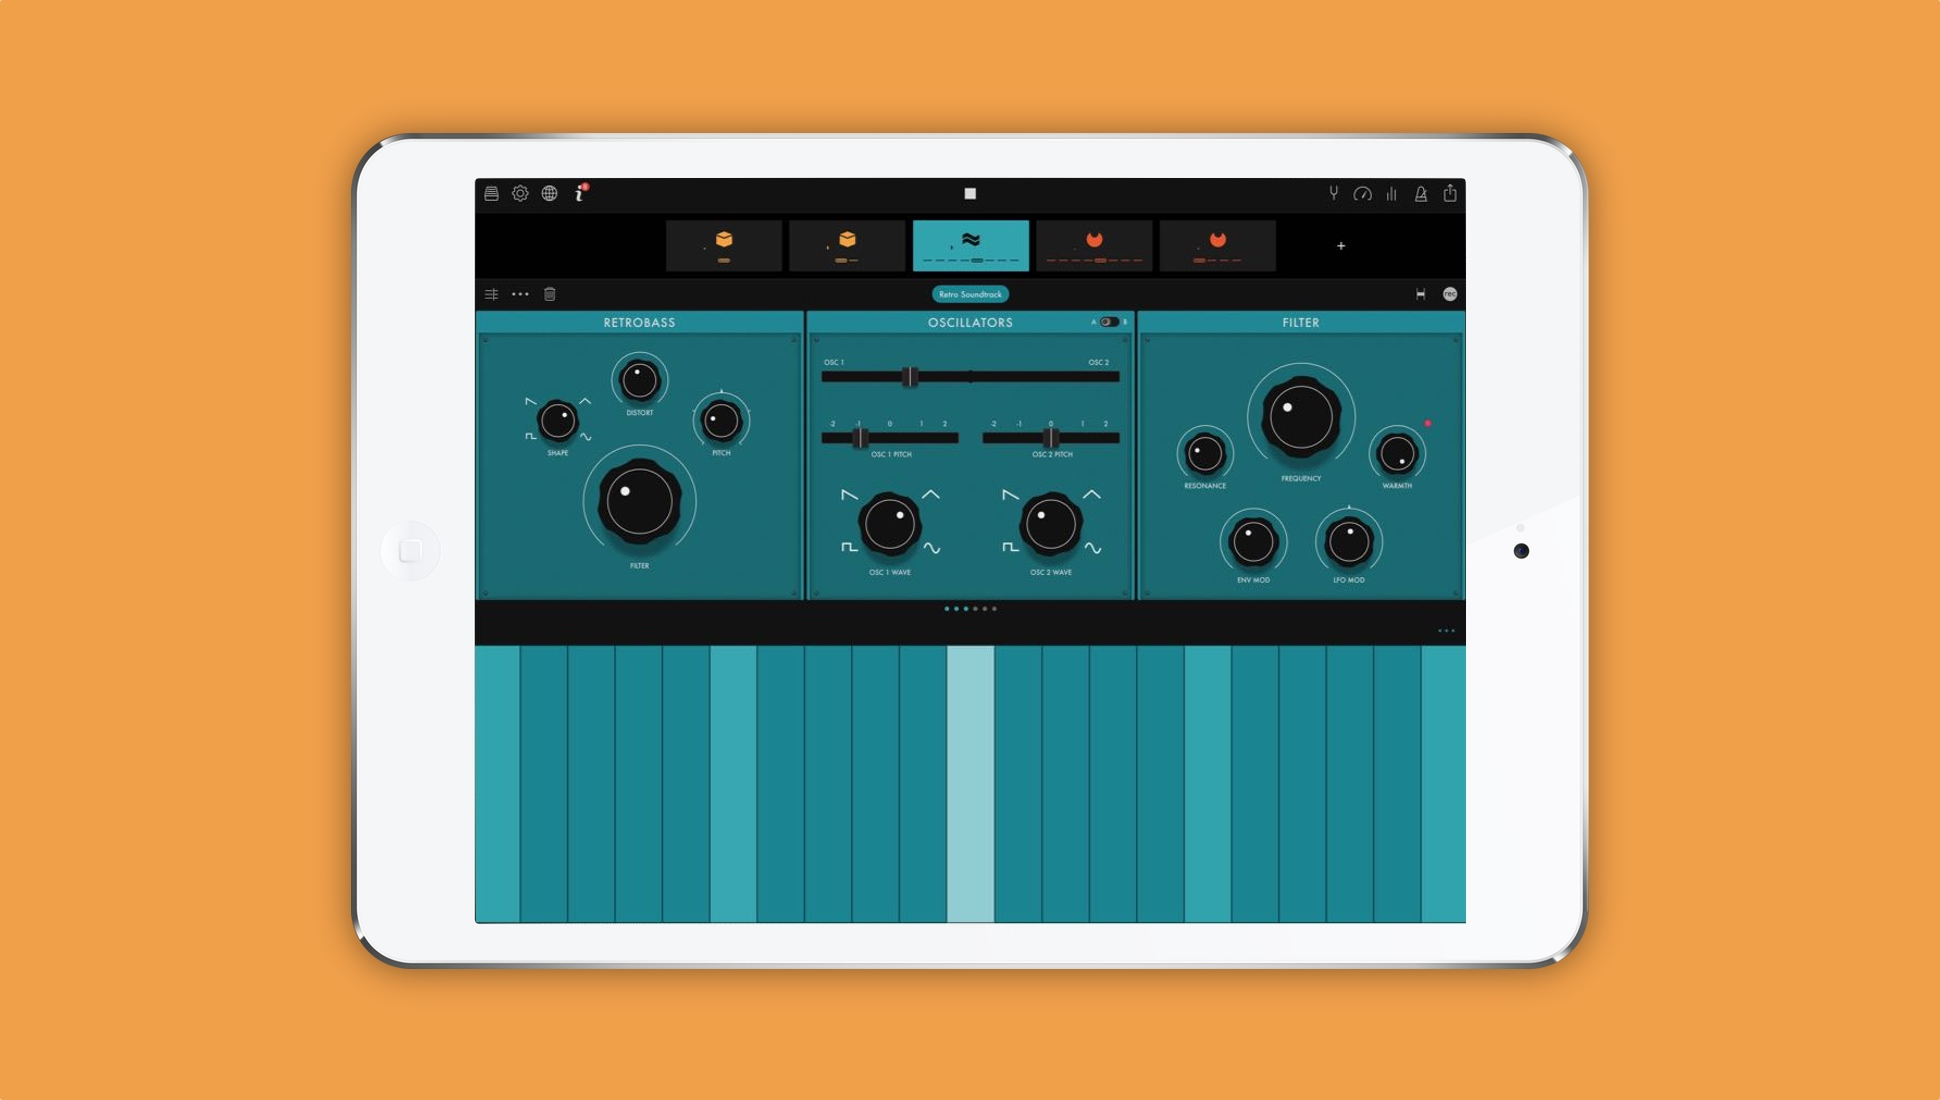 Ampify Groovebox review: An impressive free beat-making app whose hidden depths come at a price